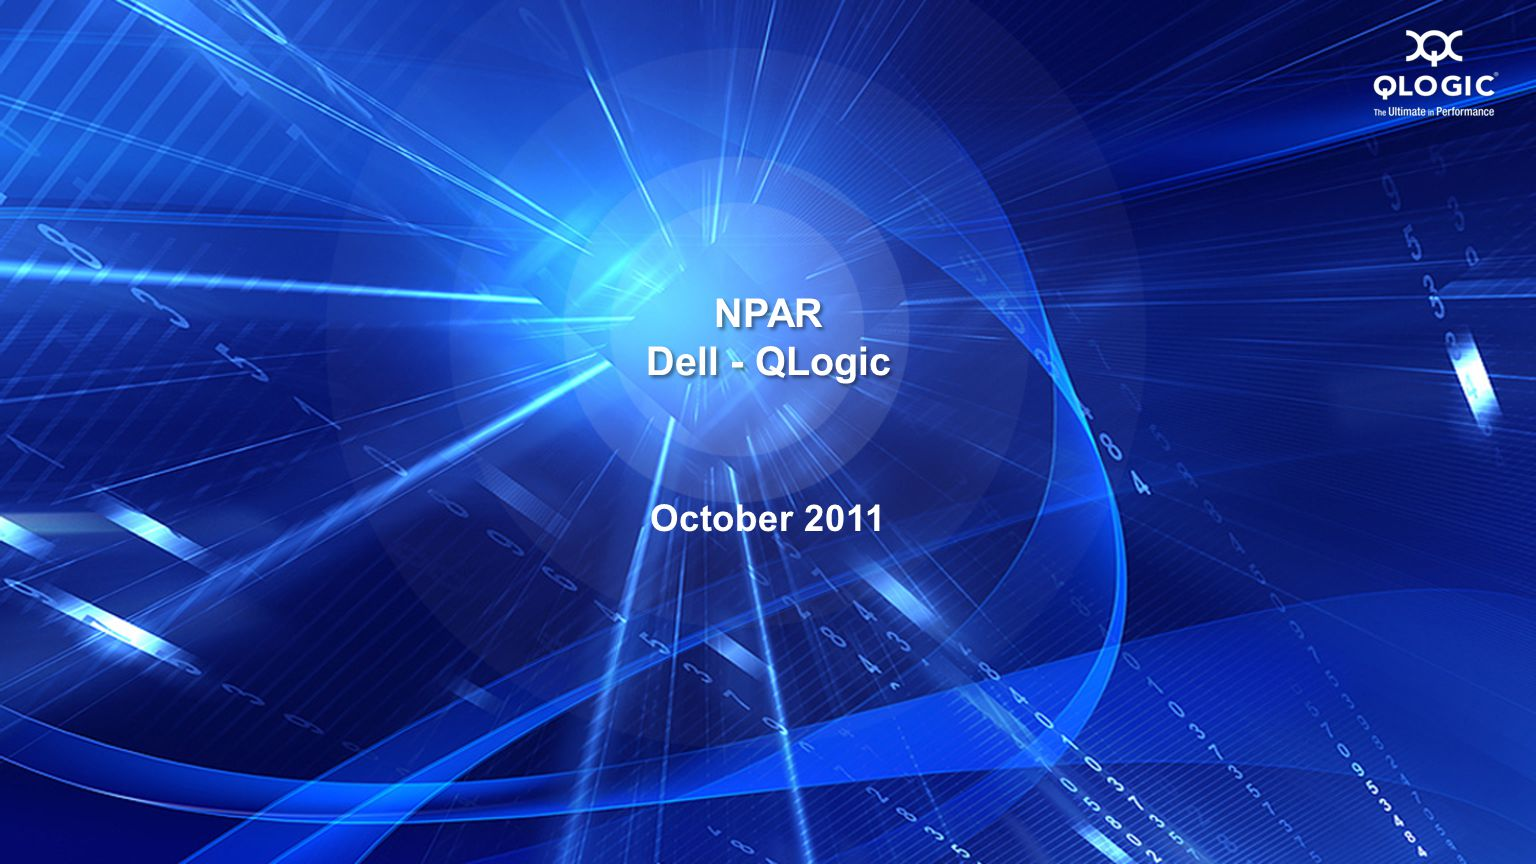 NPAR Dell - QLogic October 2011